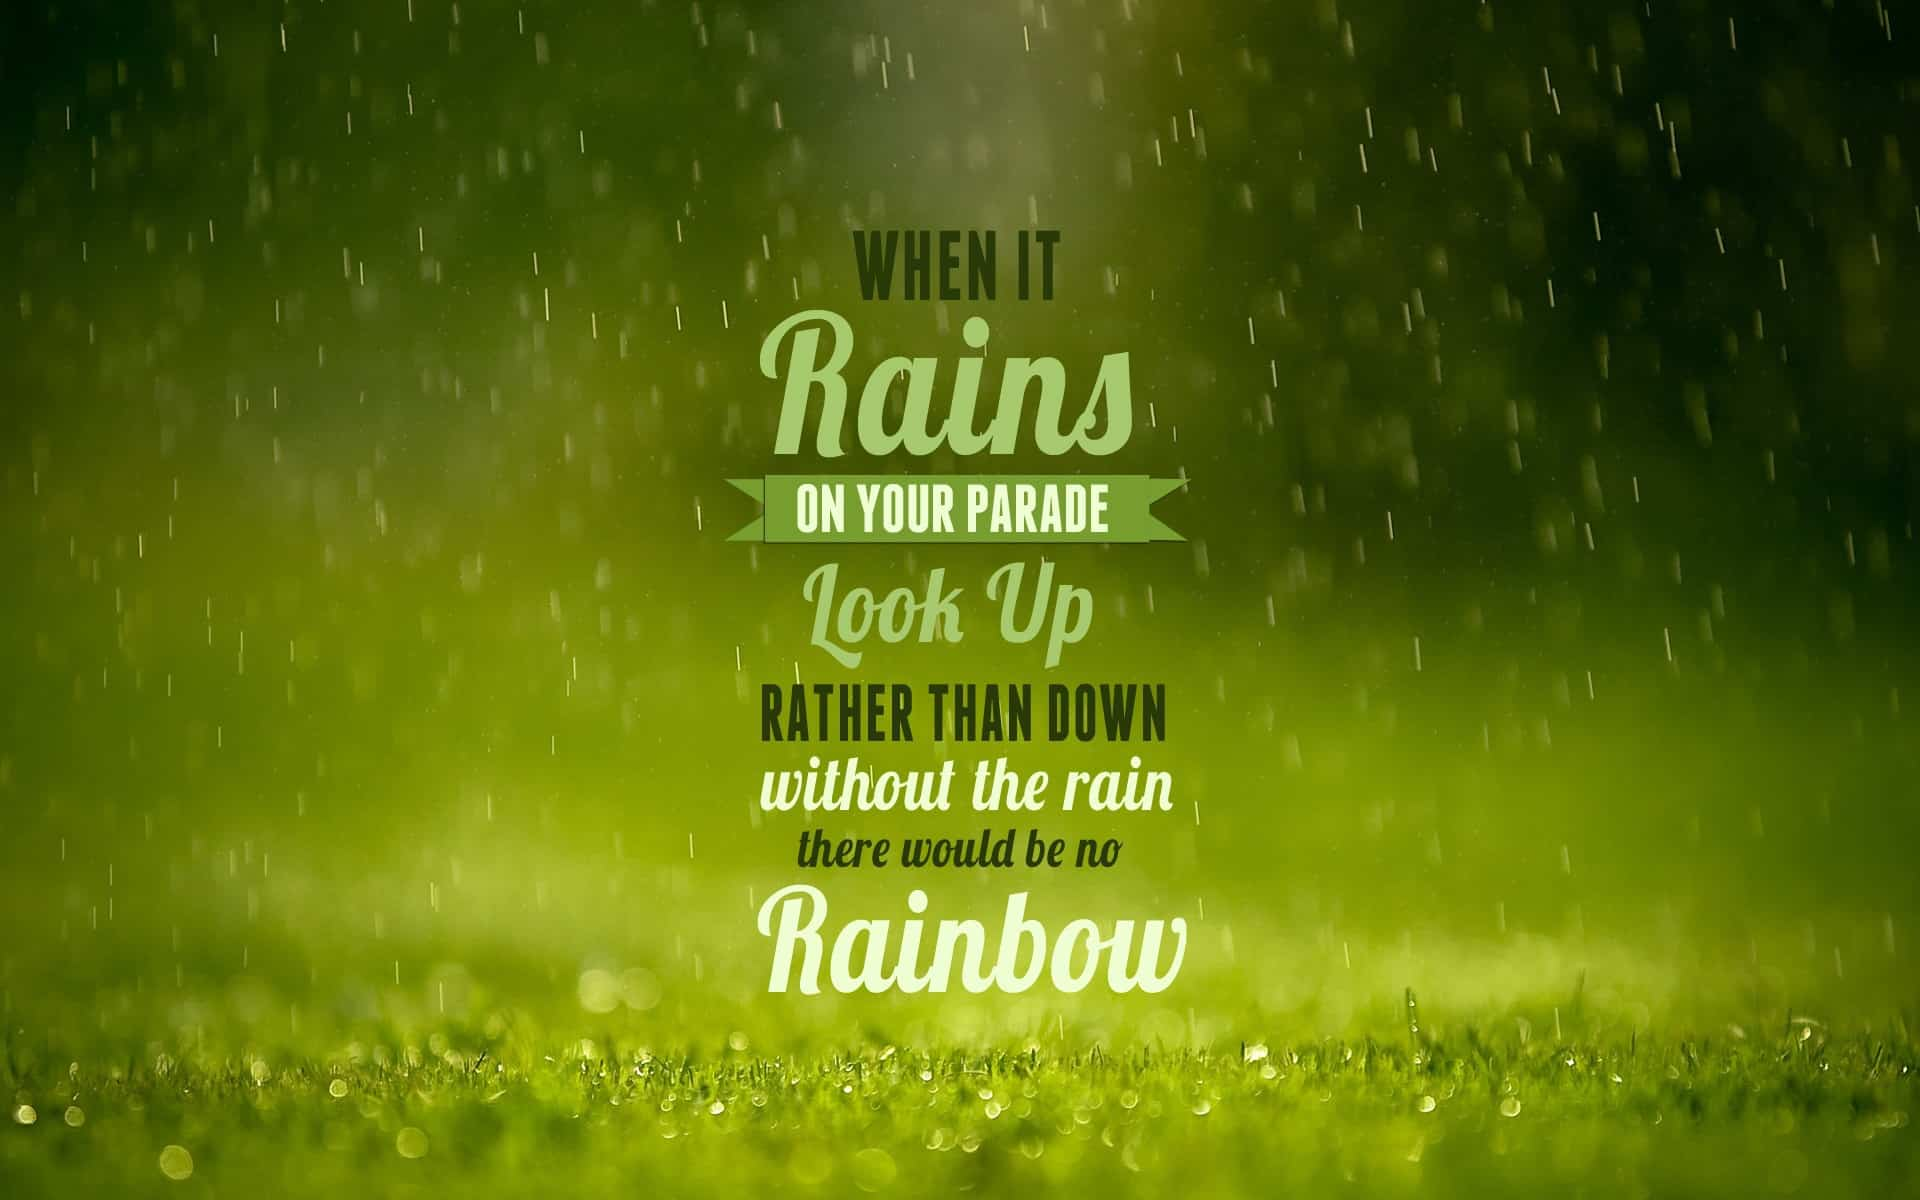 rain quotes and sayings cute - photo #30